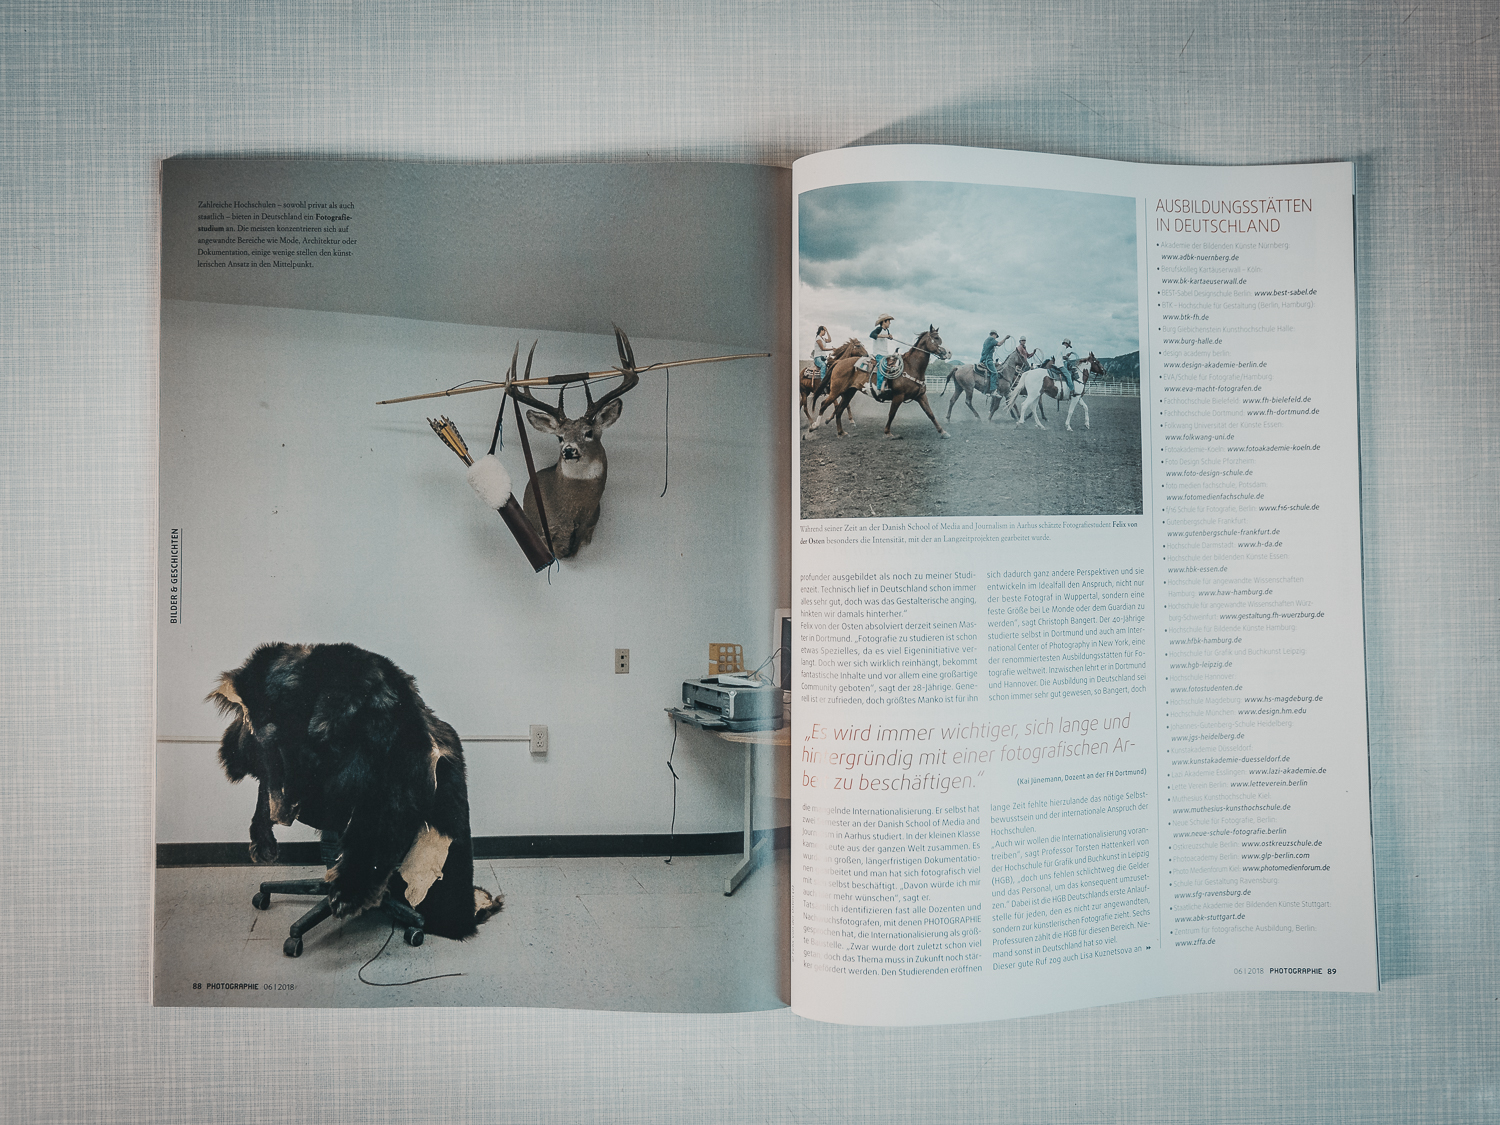 Two photographes of my series »The Buffalo that could not dream« accompanies the article about studying photography.